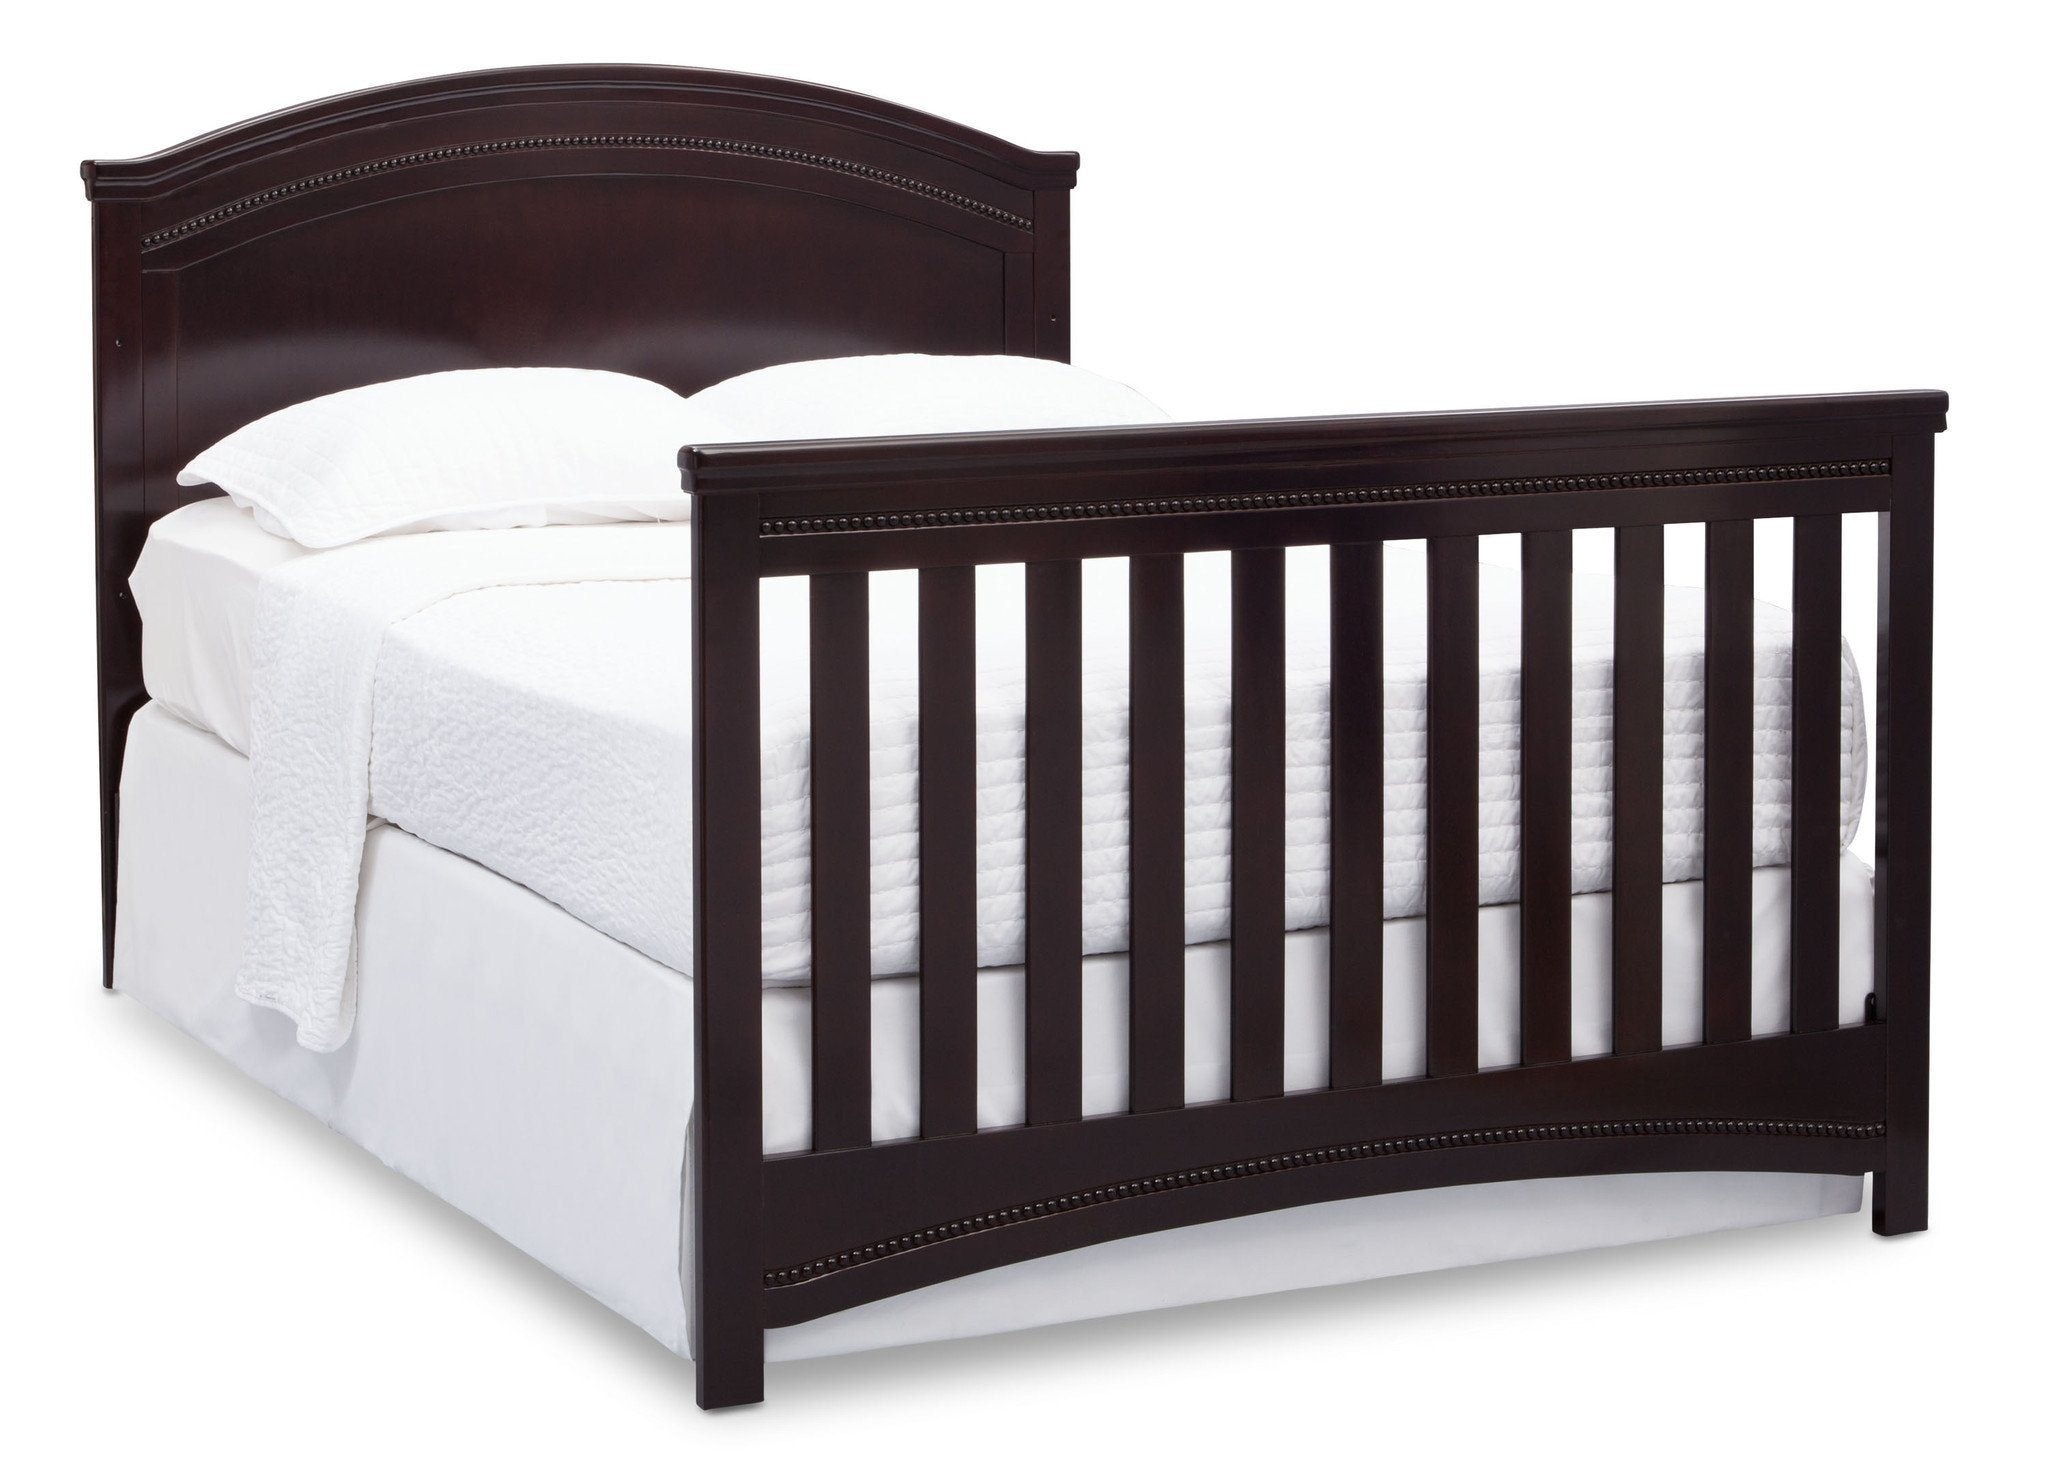 Simmons Kids Black Espresso (907) Emma Crib 'N' More Angled Full Size Bed Conversion View b6b